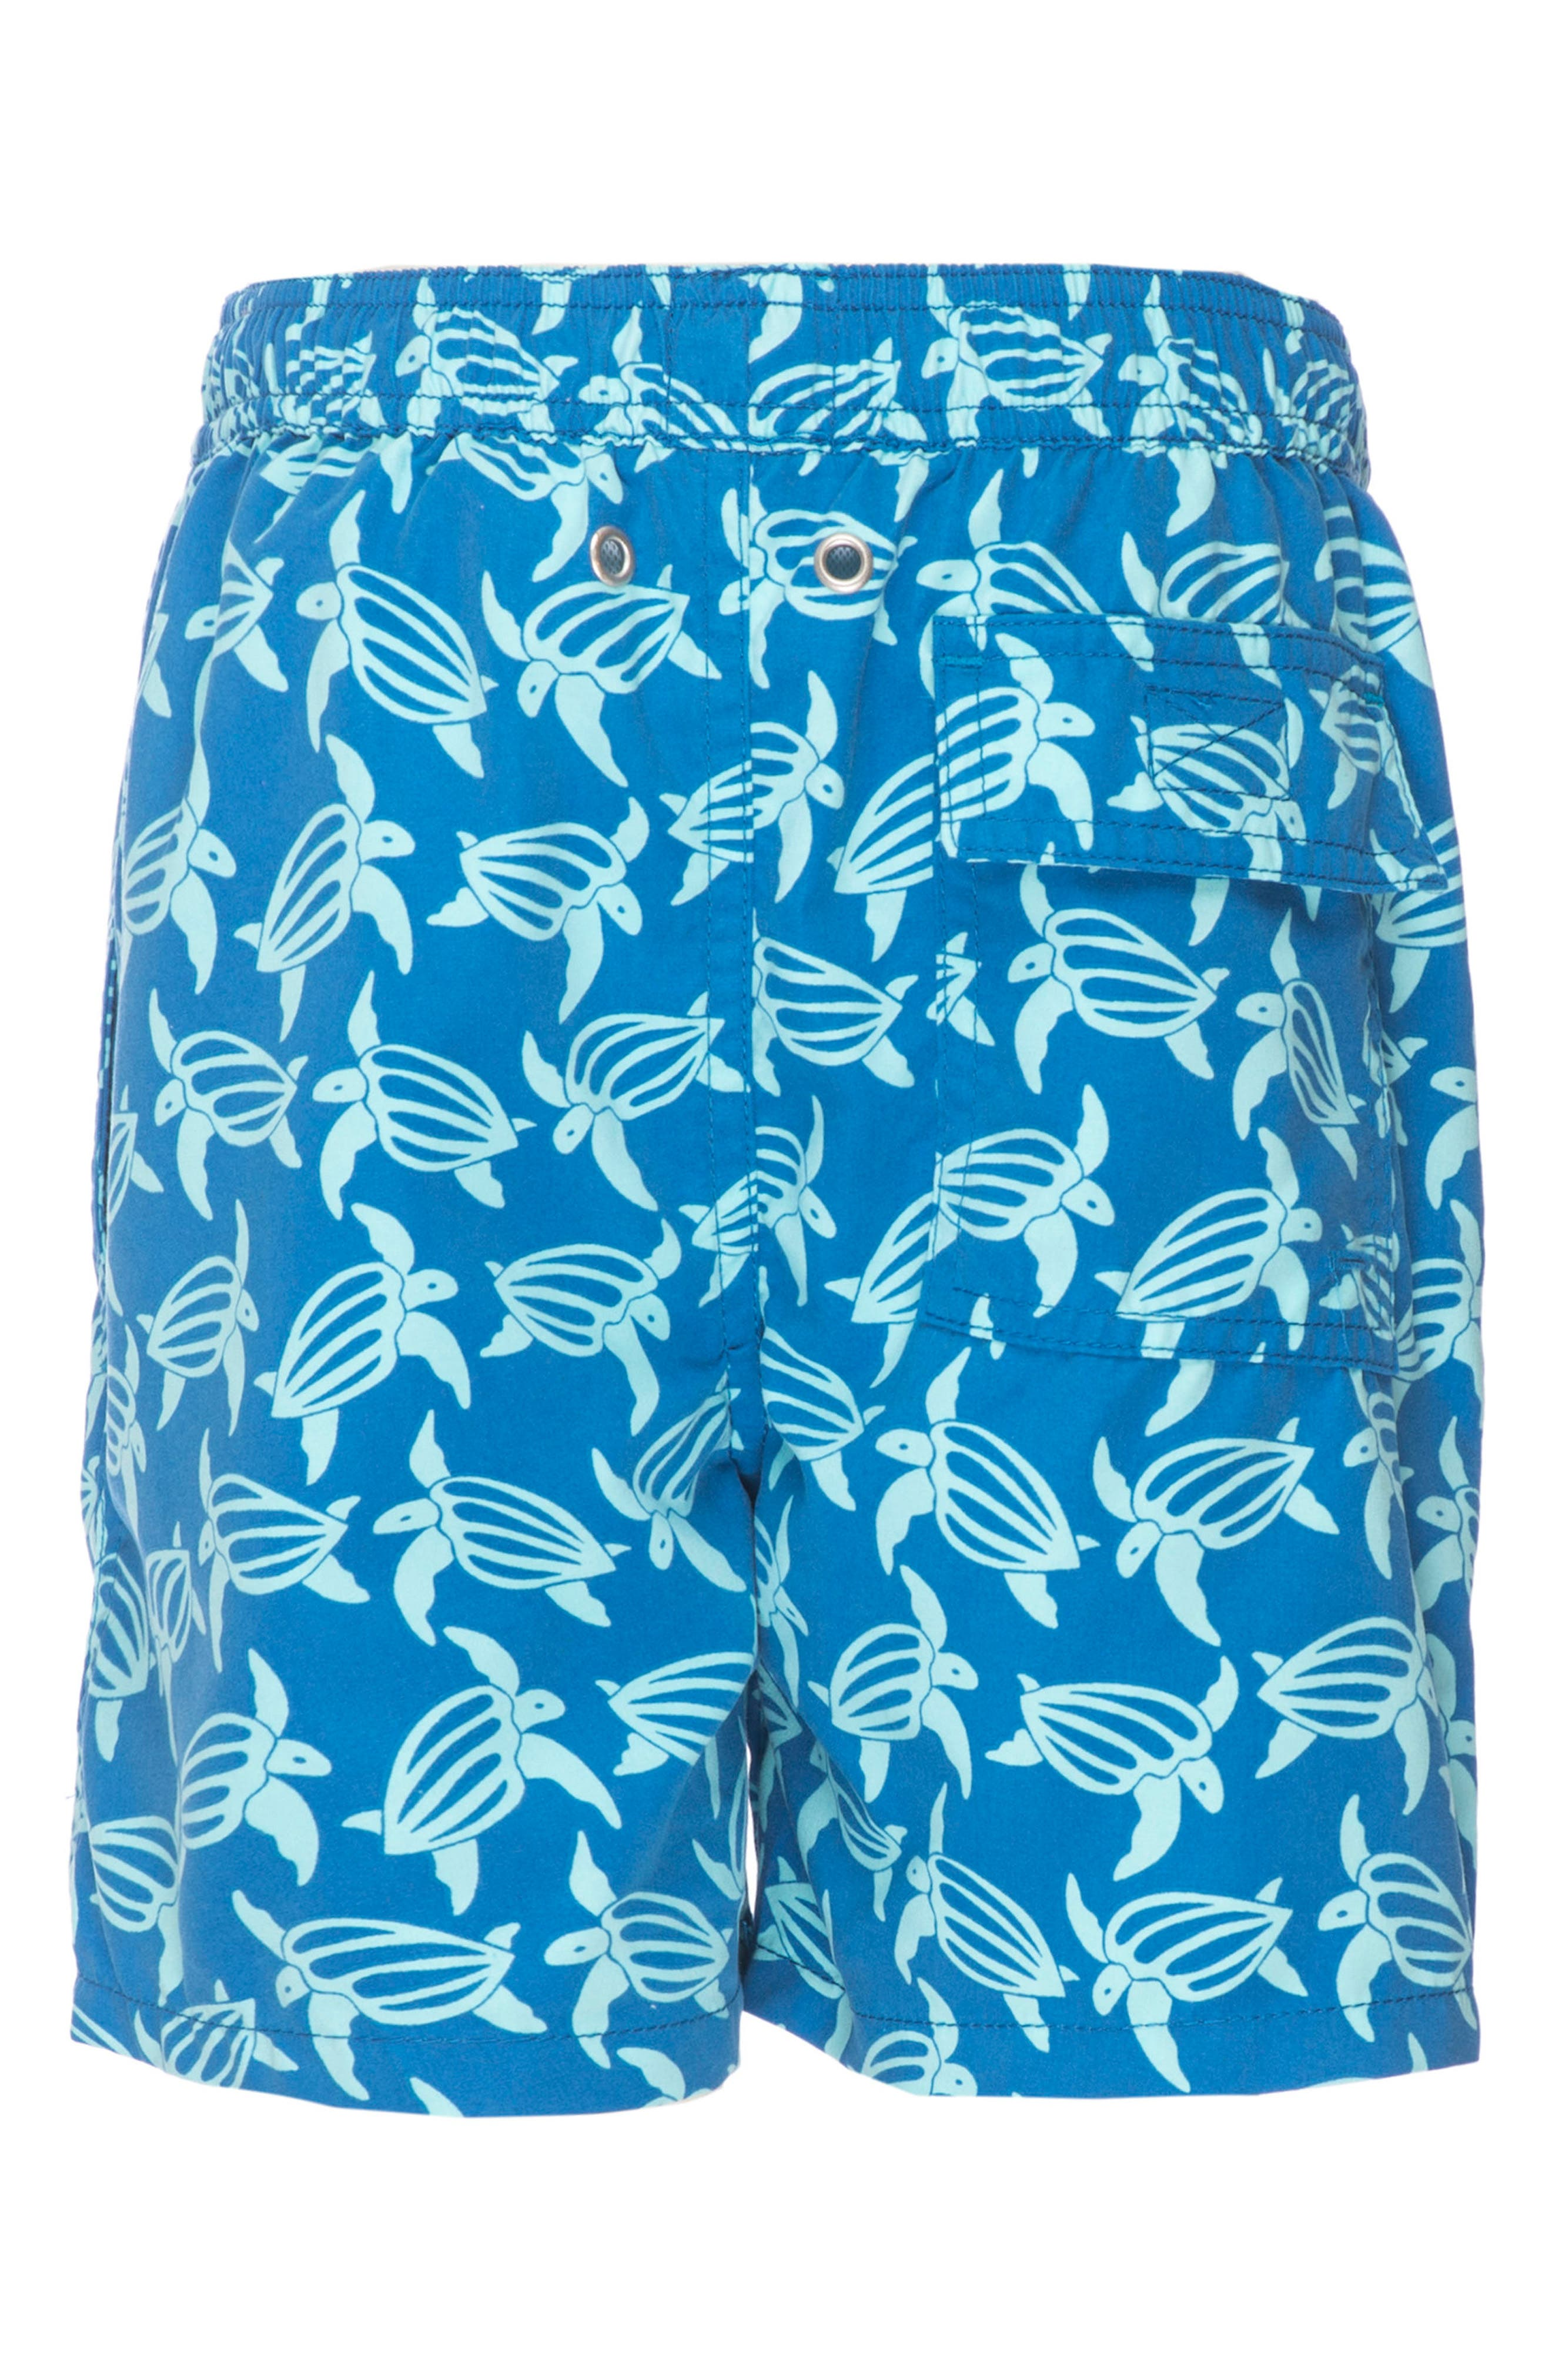 Turtle Swim Trunks,                             Alternate thumbnail 5, color,                             Mid Blue/ Sky